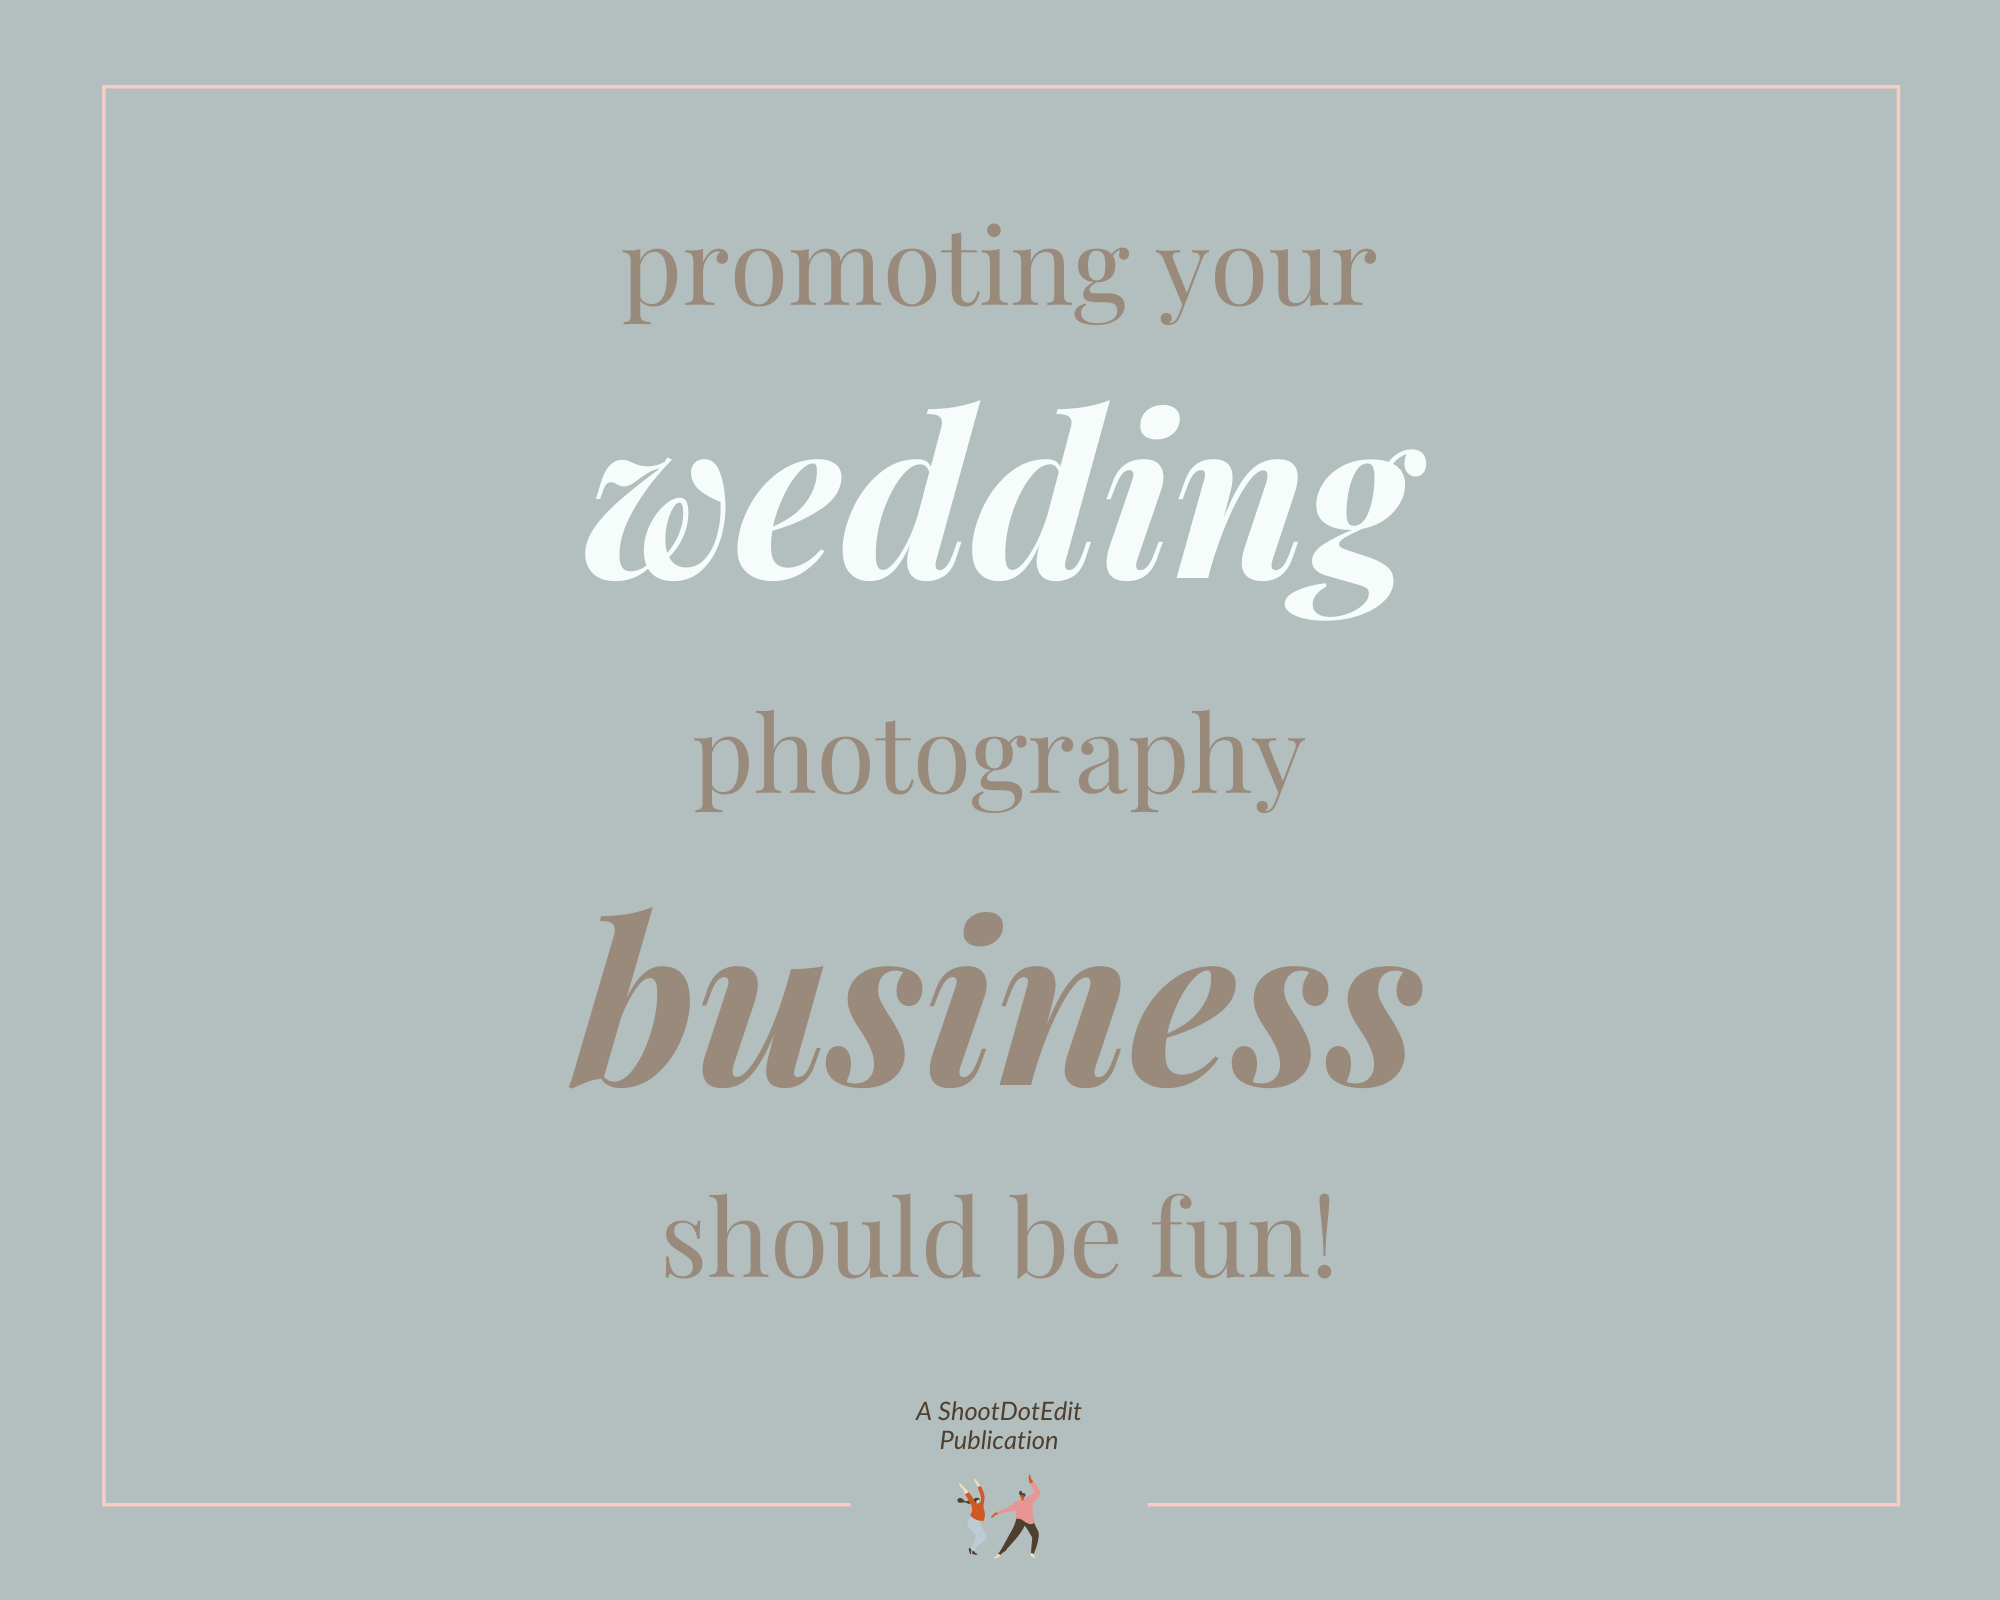 Infographic stating promoting your wedding photography business should be fun